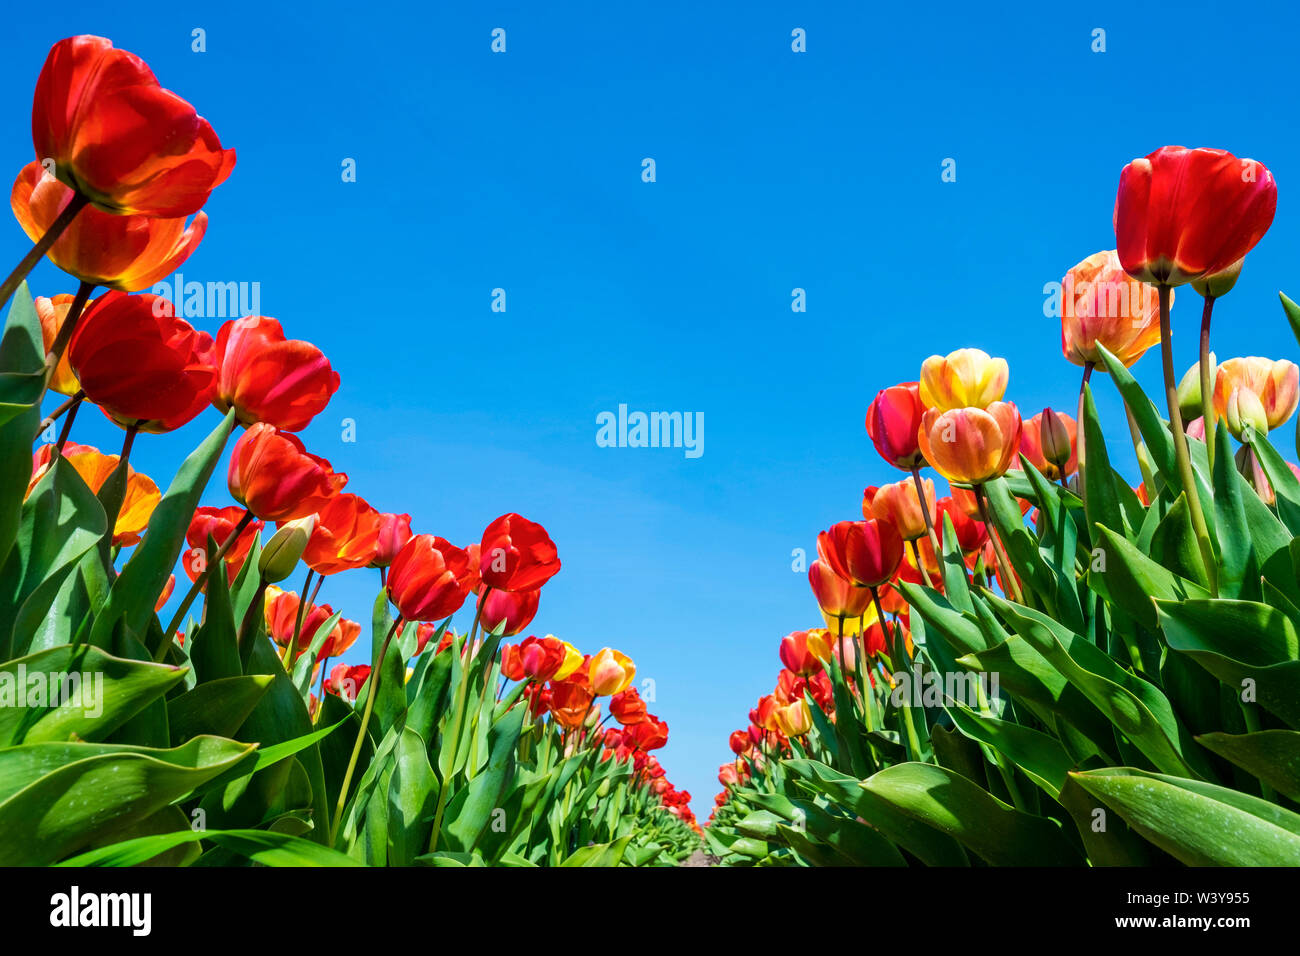 Netherlands, North Holland, Callantsoog. Multicolored tulip flowers against a blue sky, near the village of Zipje. - Stock Image